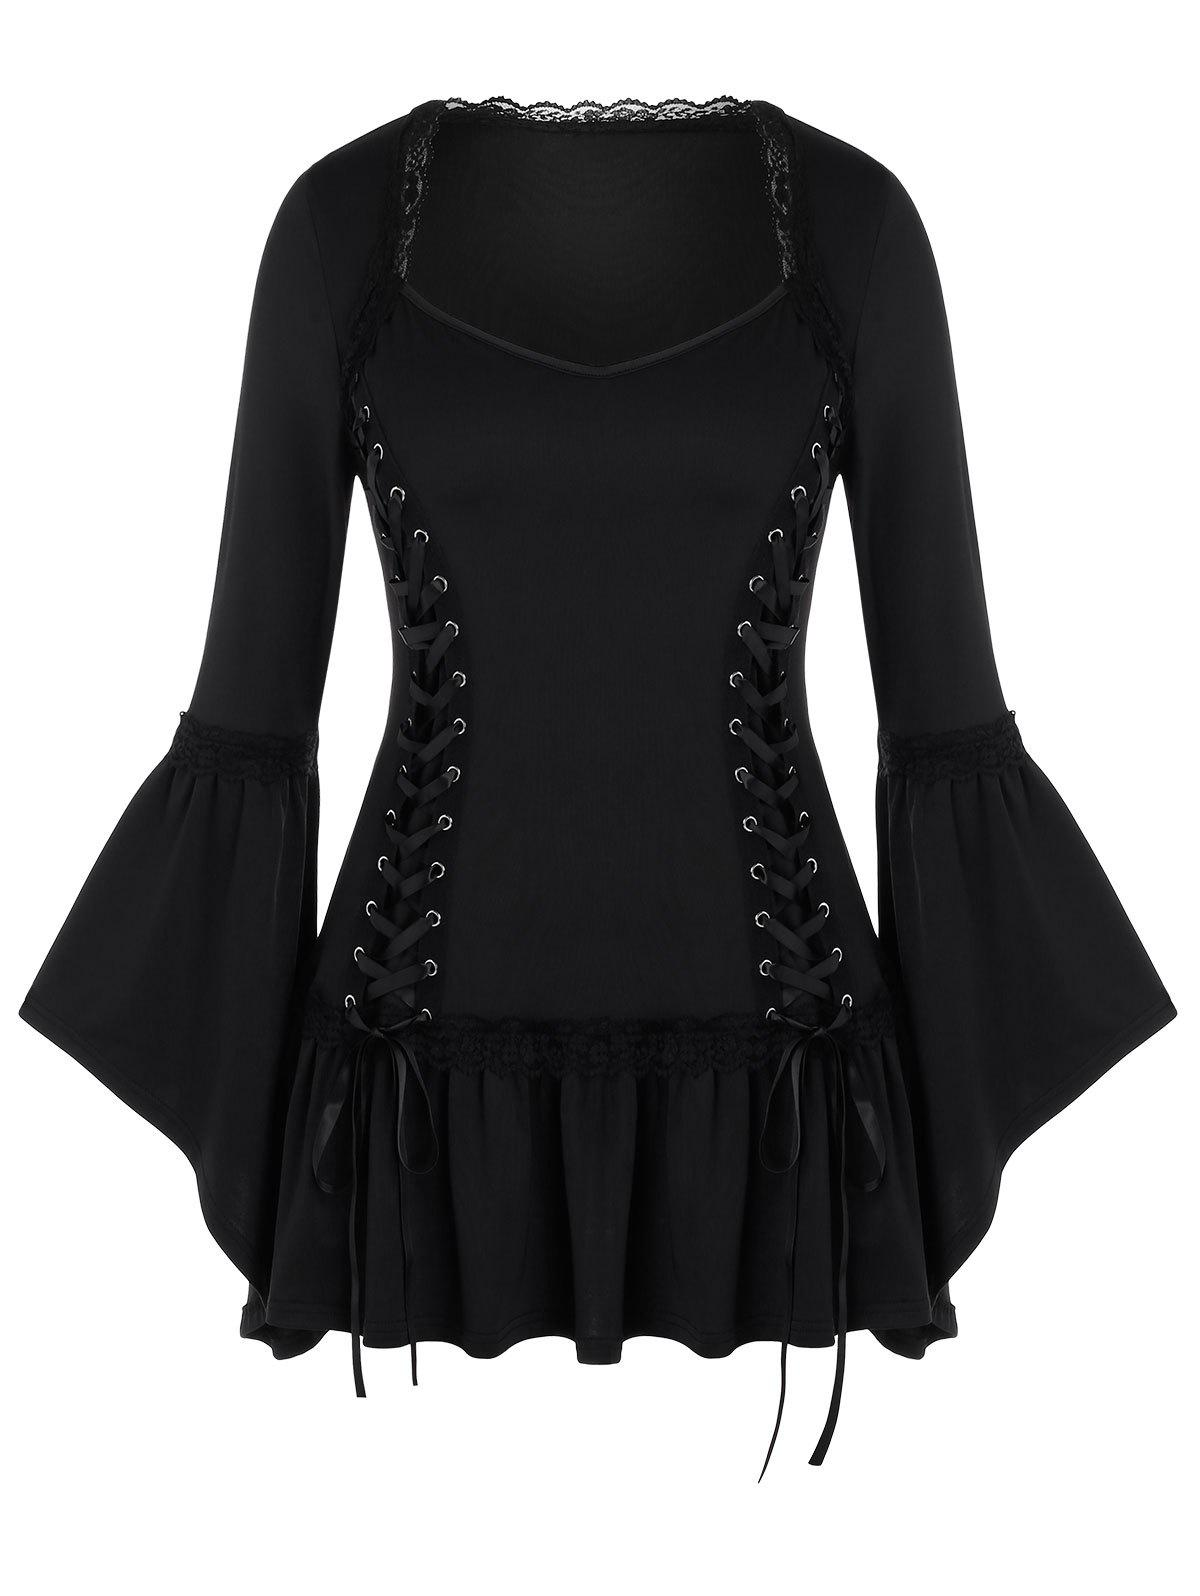 Plus Size Solid Long Sleeve Lace Up T Shirt - BLACK 4X